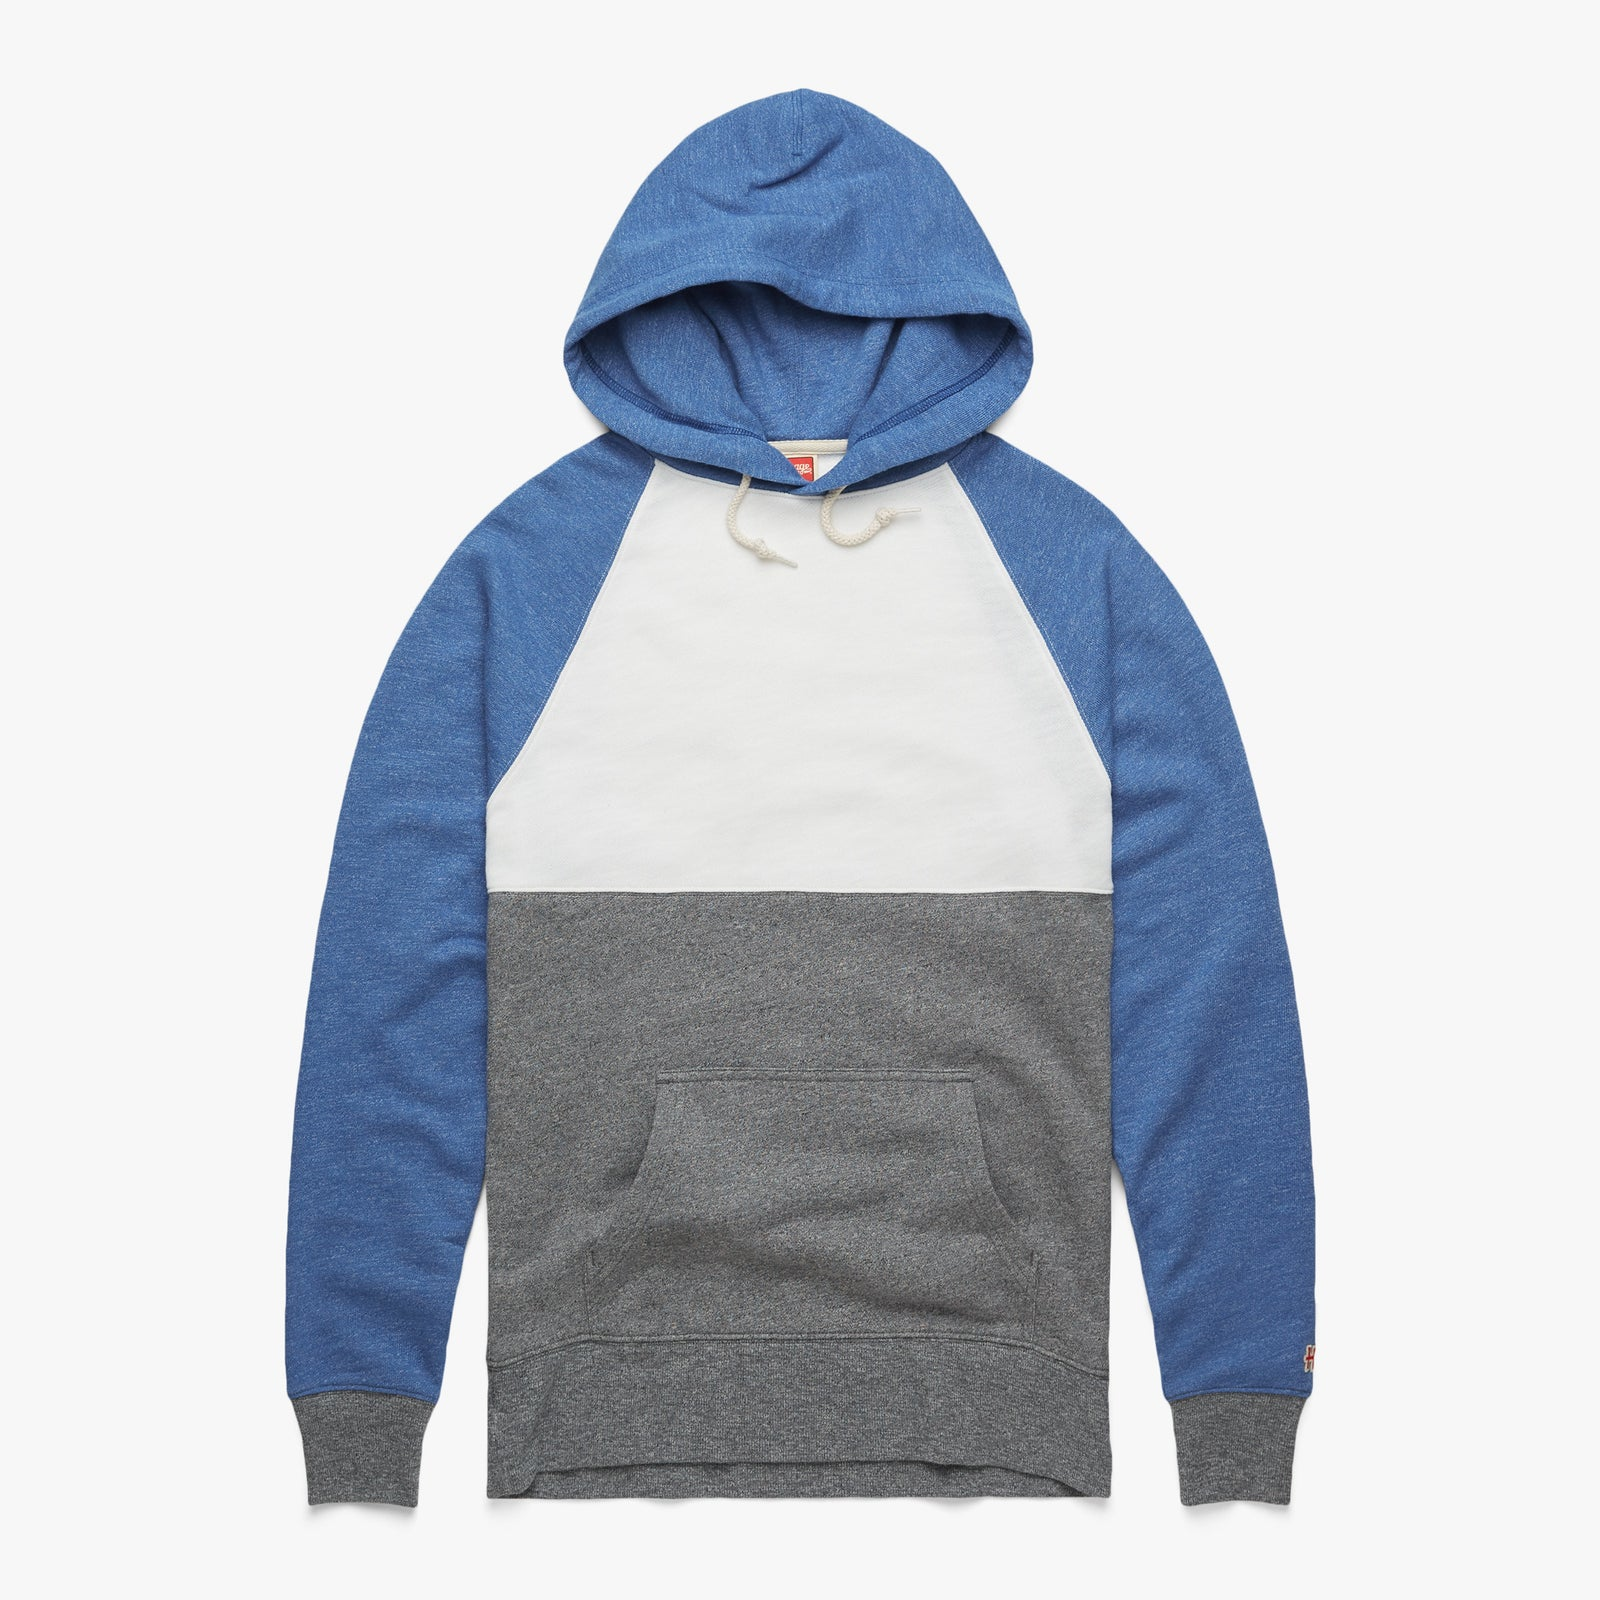 Go-To Power Hoodie